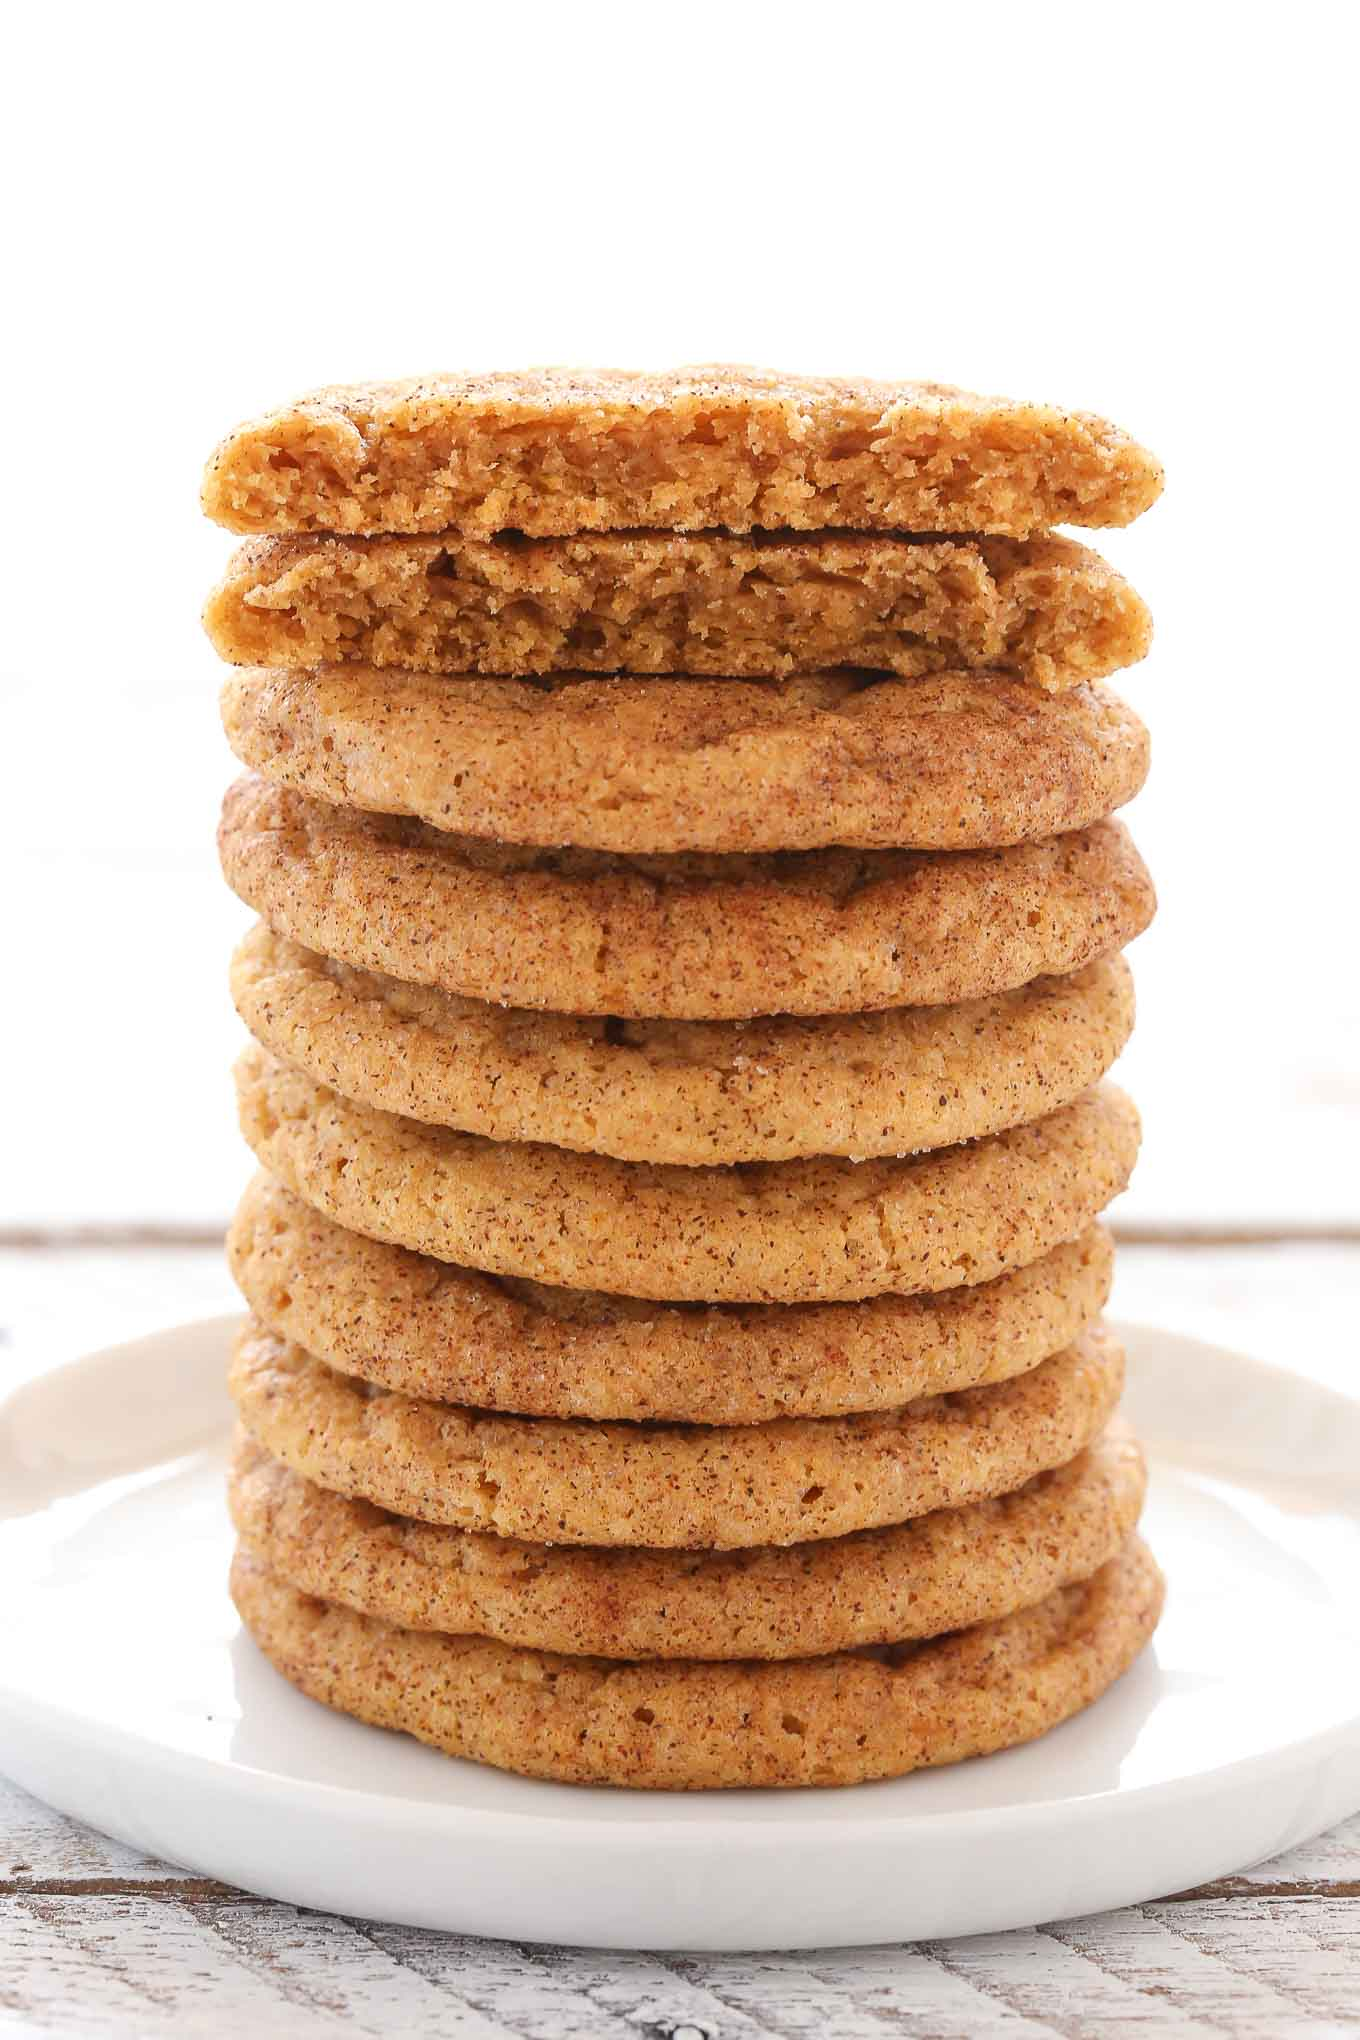 These Pumpkin Snickerdoodles are super soft and chewy (not cakey!),made with real pumpkin, and coated in cinnamon and sugar. A perfect cookie recipe for fall!